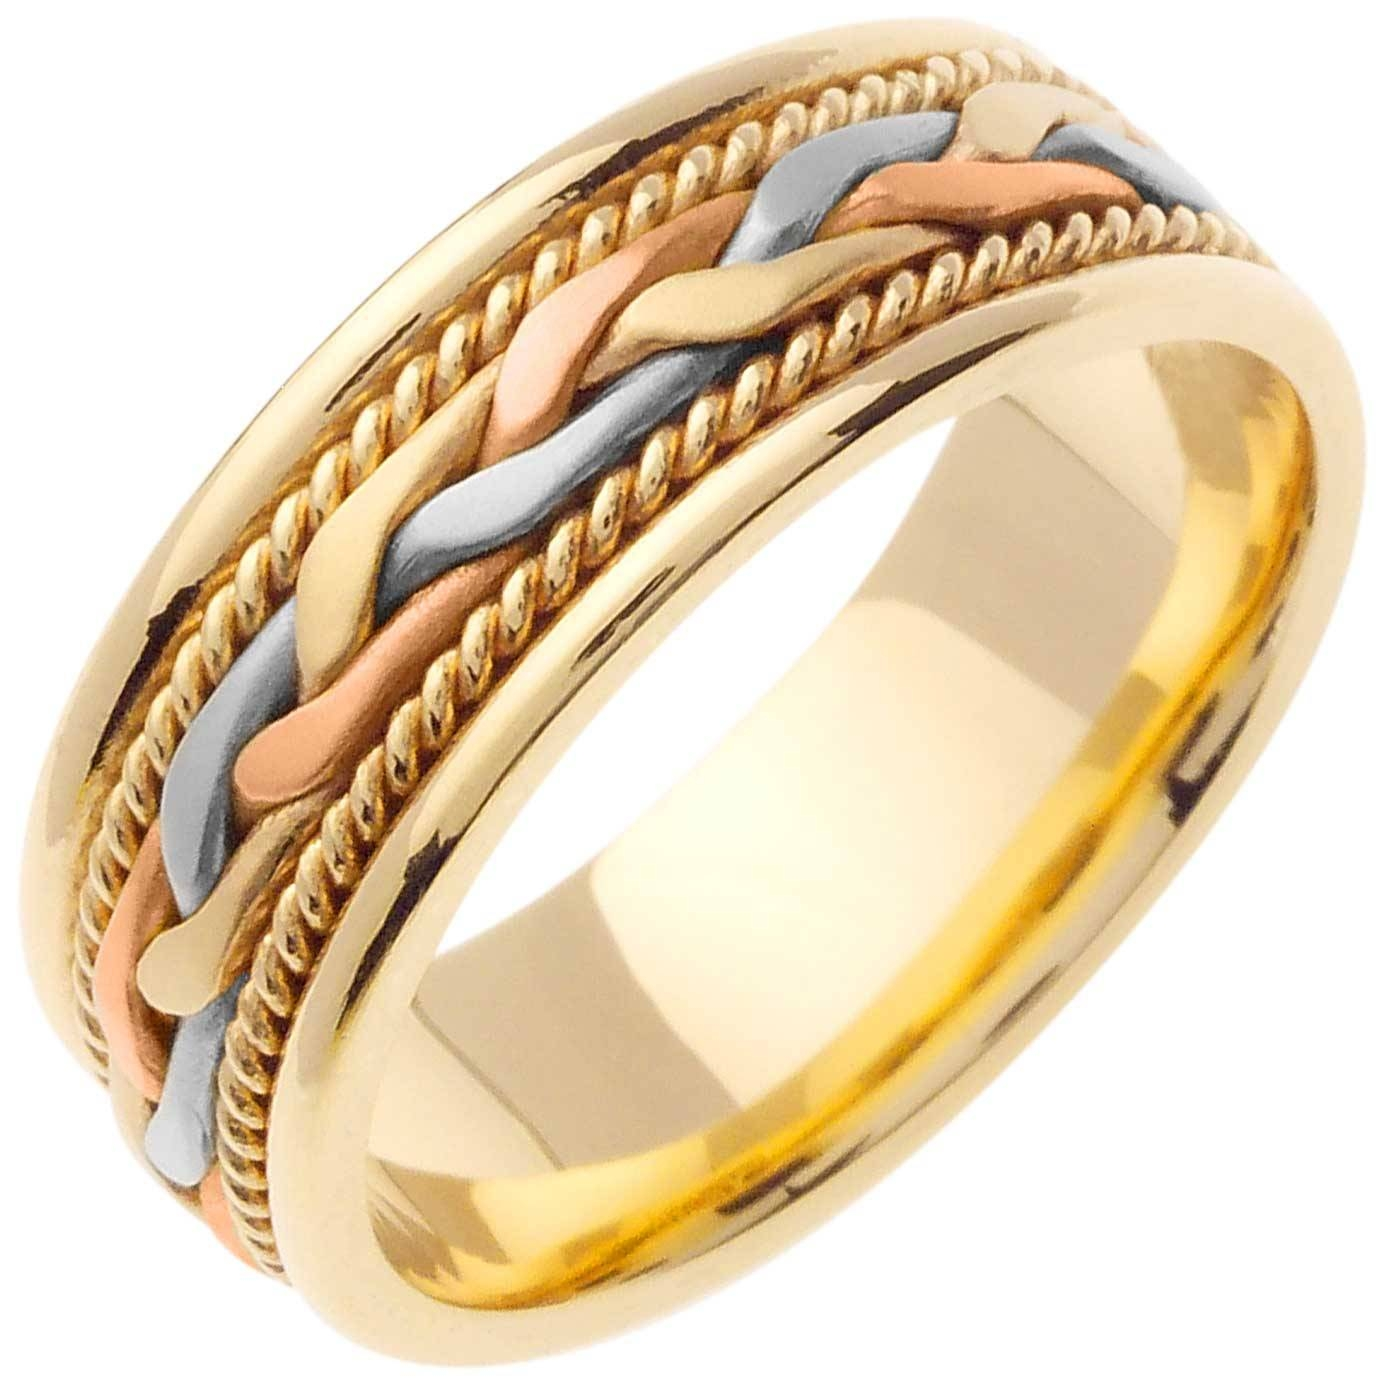 14K Tri Color Gold French Braid Band 7Mm  3000182 – Shop At With Regard To Men's Braided Wedding Bands (View 2 of 15)